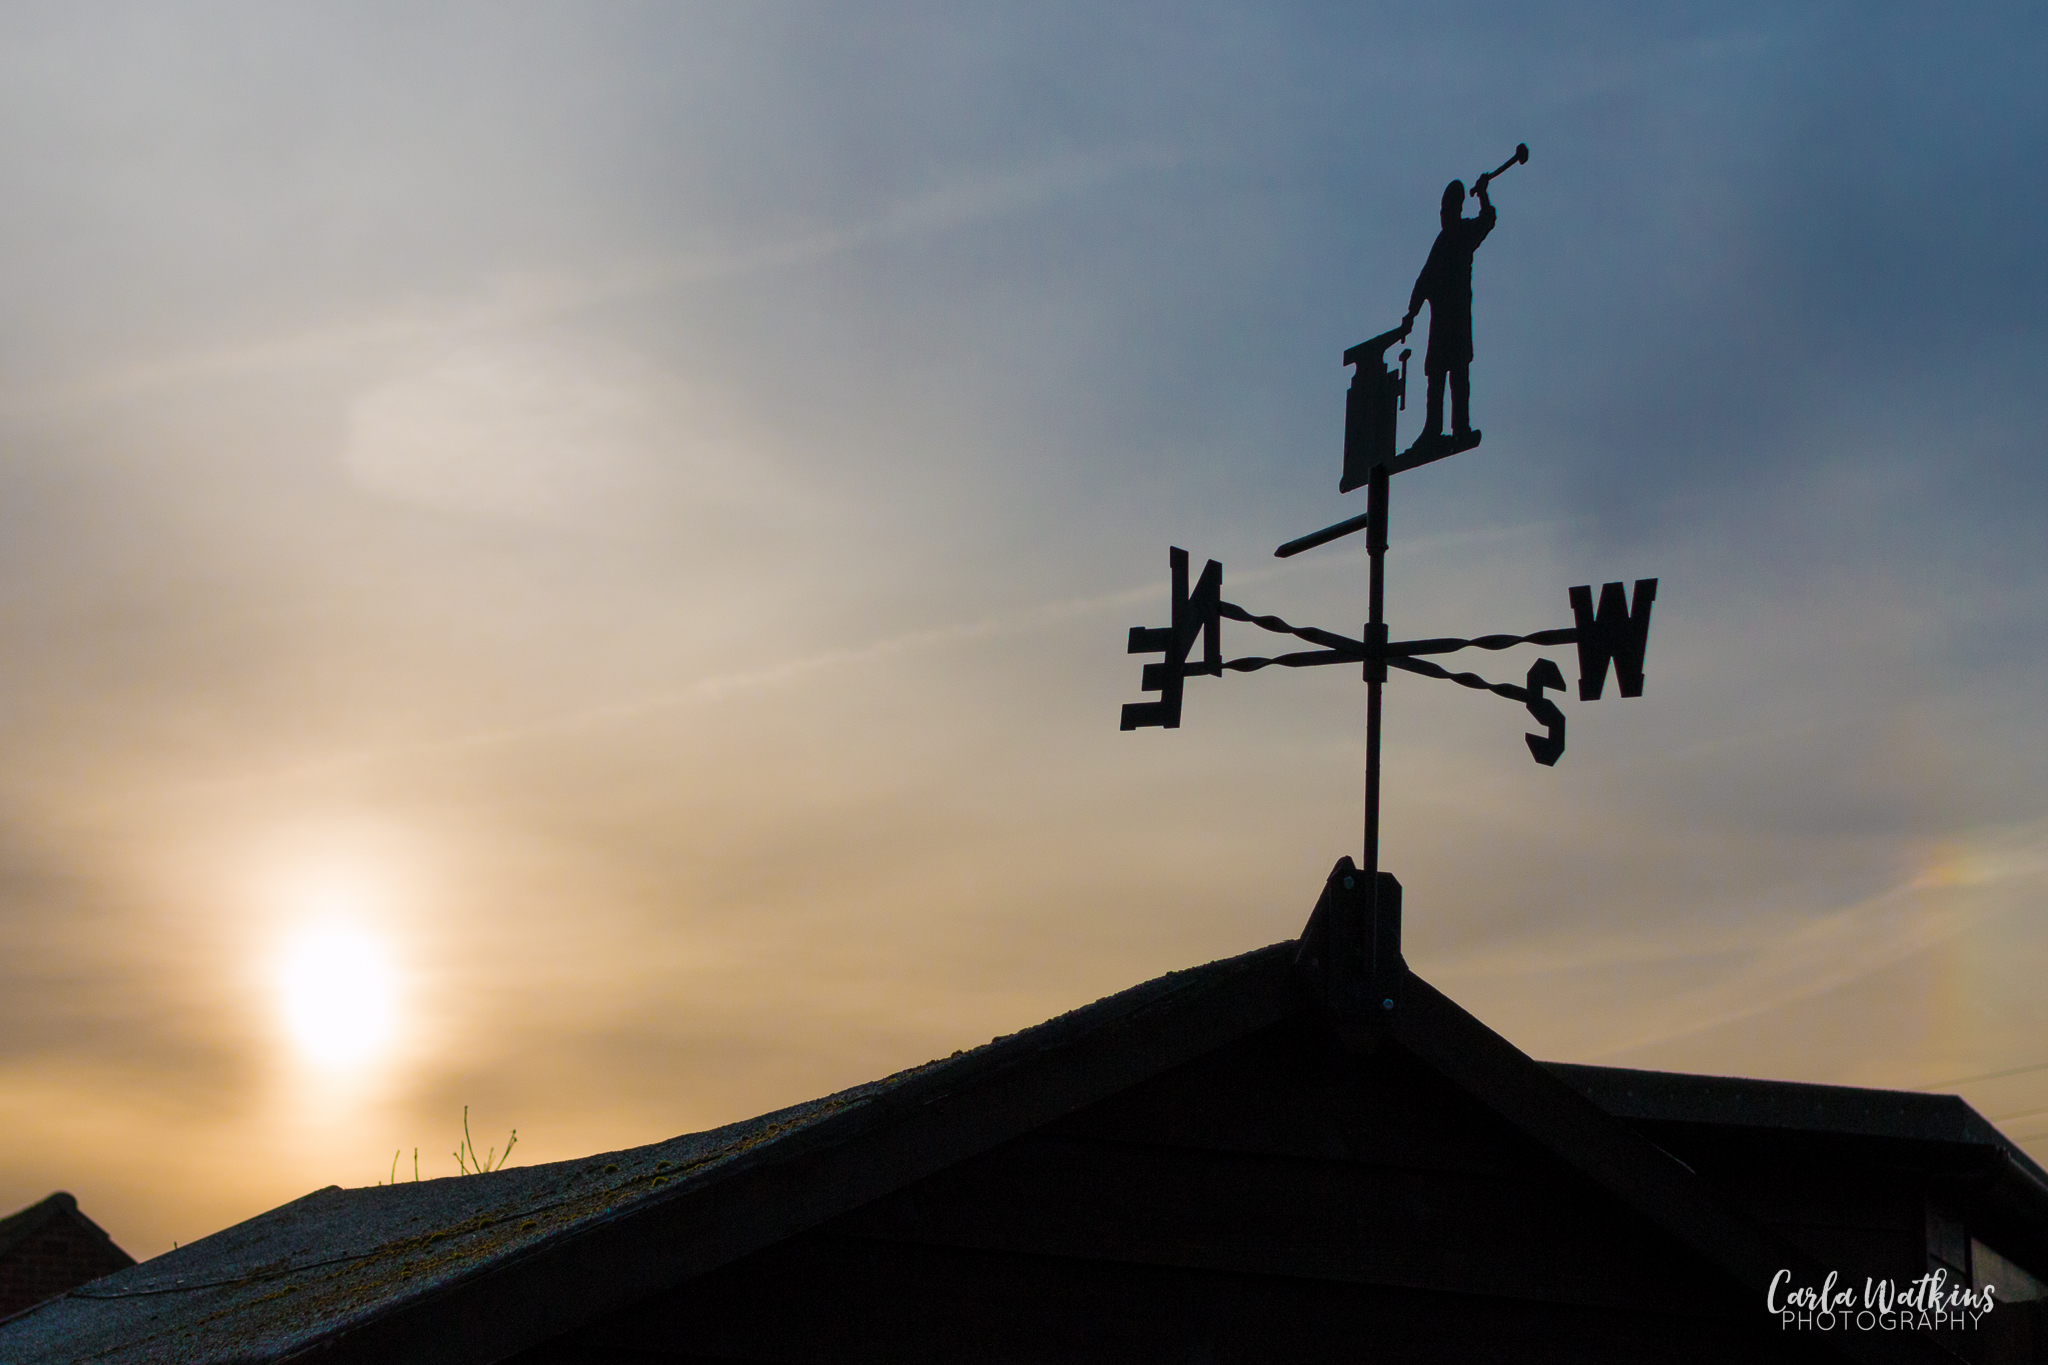 weathervane with a blacksmith, facing a rising sun | Carla Watkins Photography 2016 | carlawatkinsphotography.com